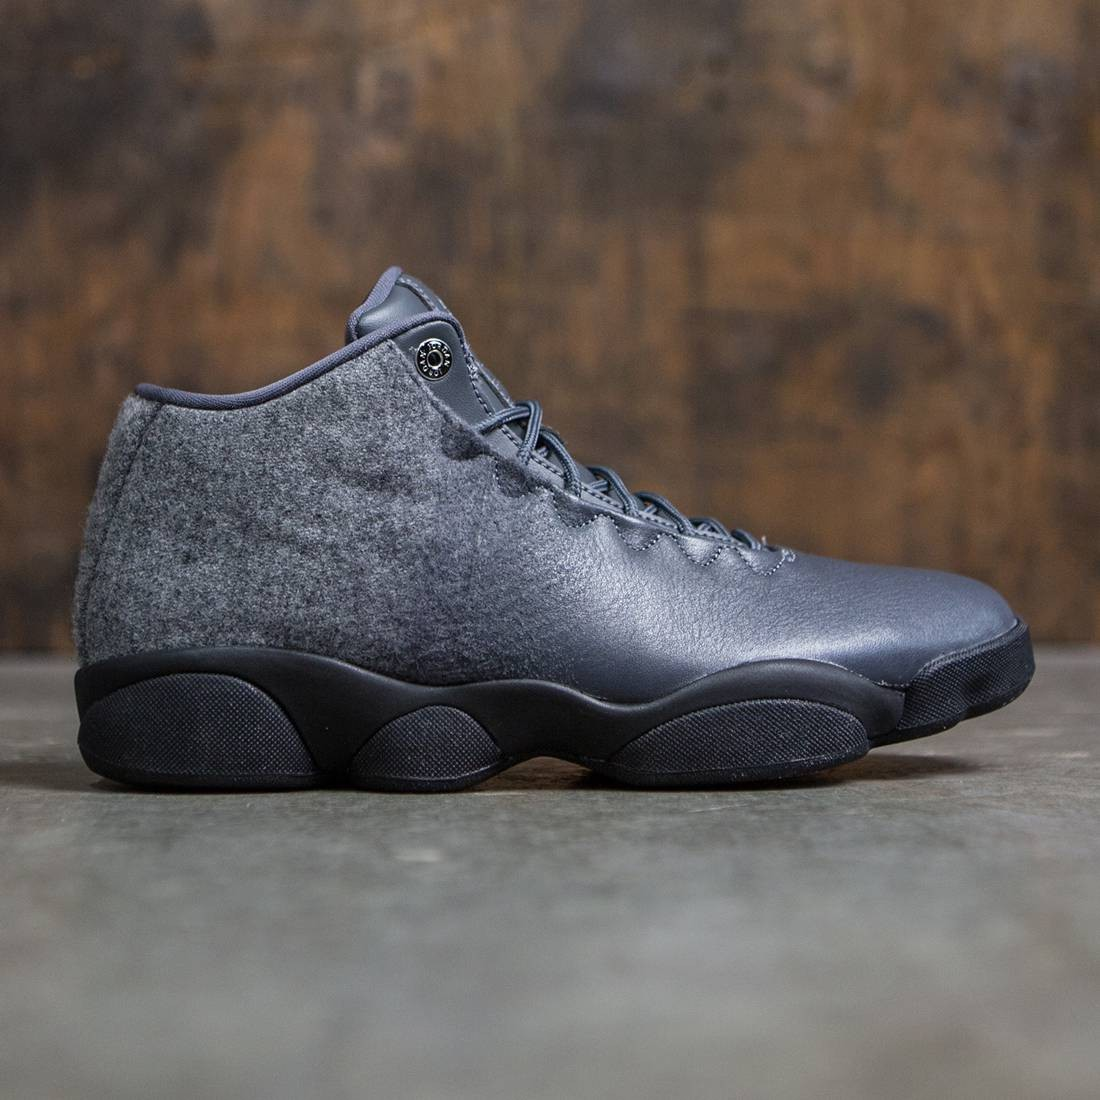 newest 24c72 2e53b Jordan Men Jordan Horizon Low Premium (grey   dark grey   metallic silver- black)